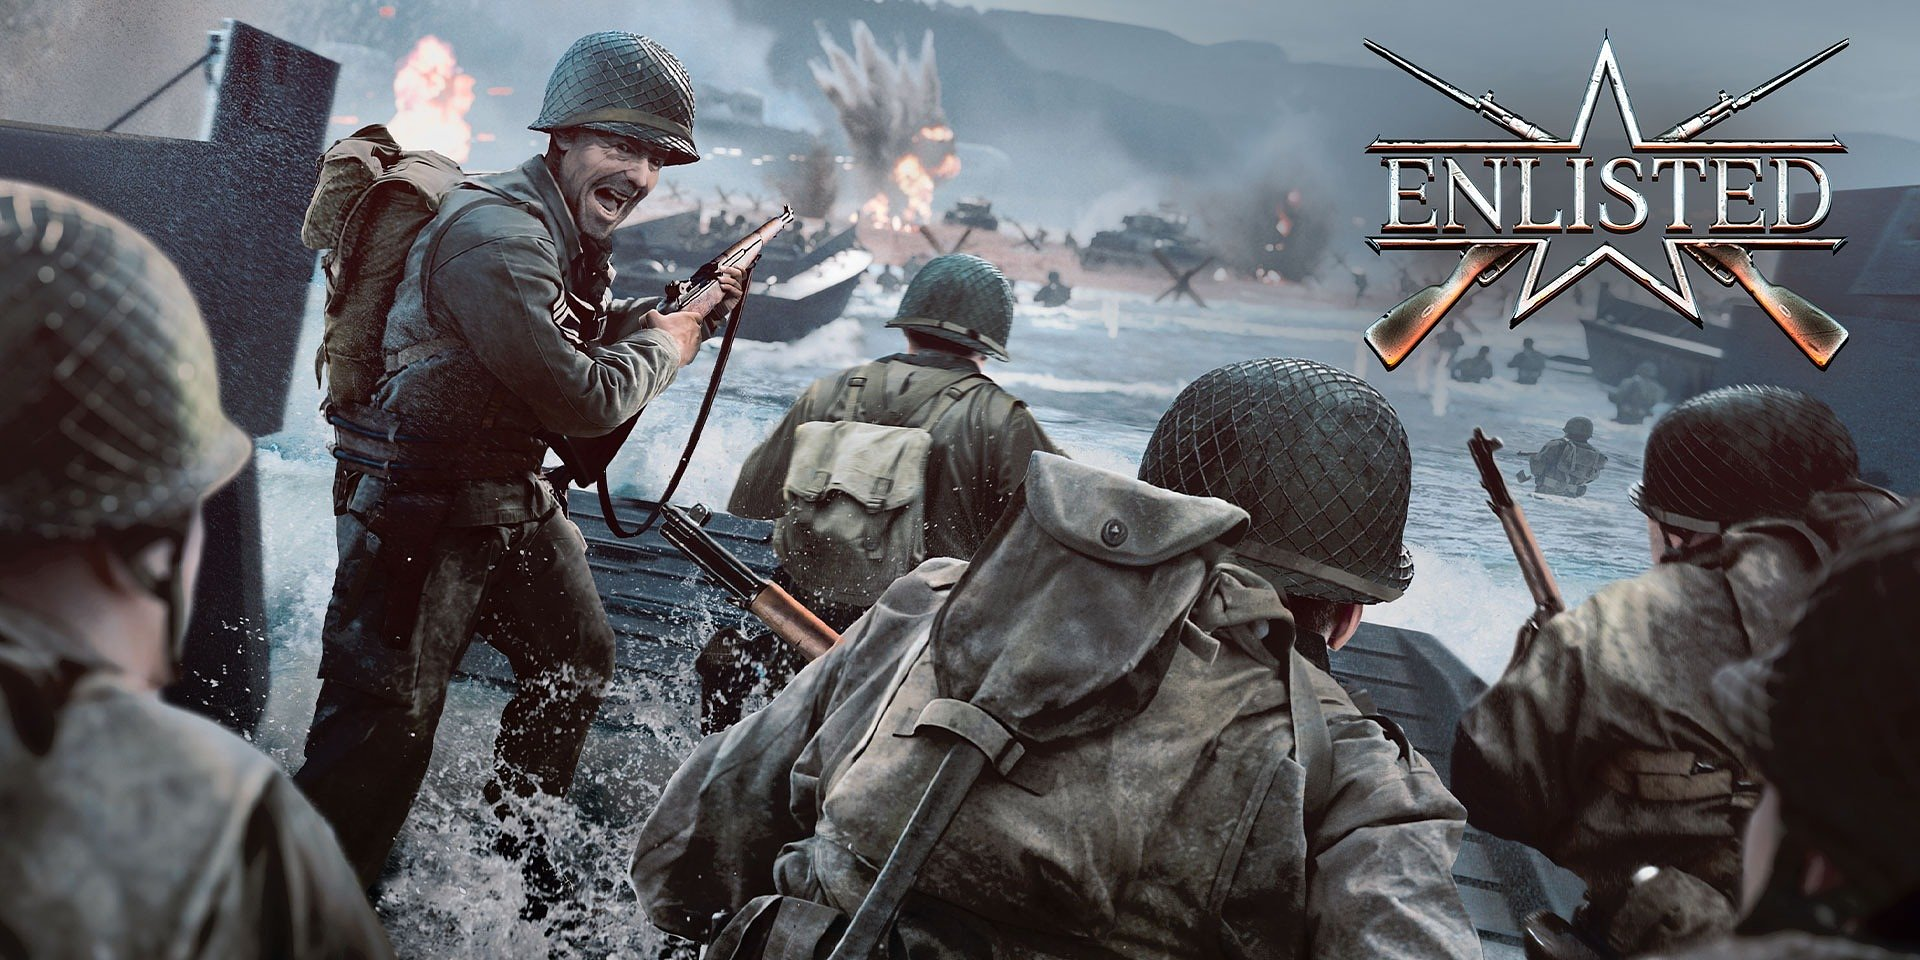 New military online shooter Enlisted is now available for free to everyone